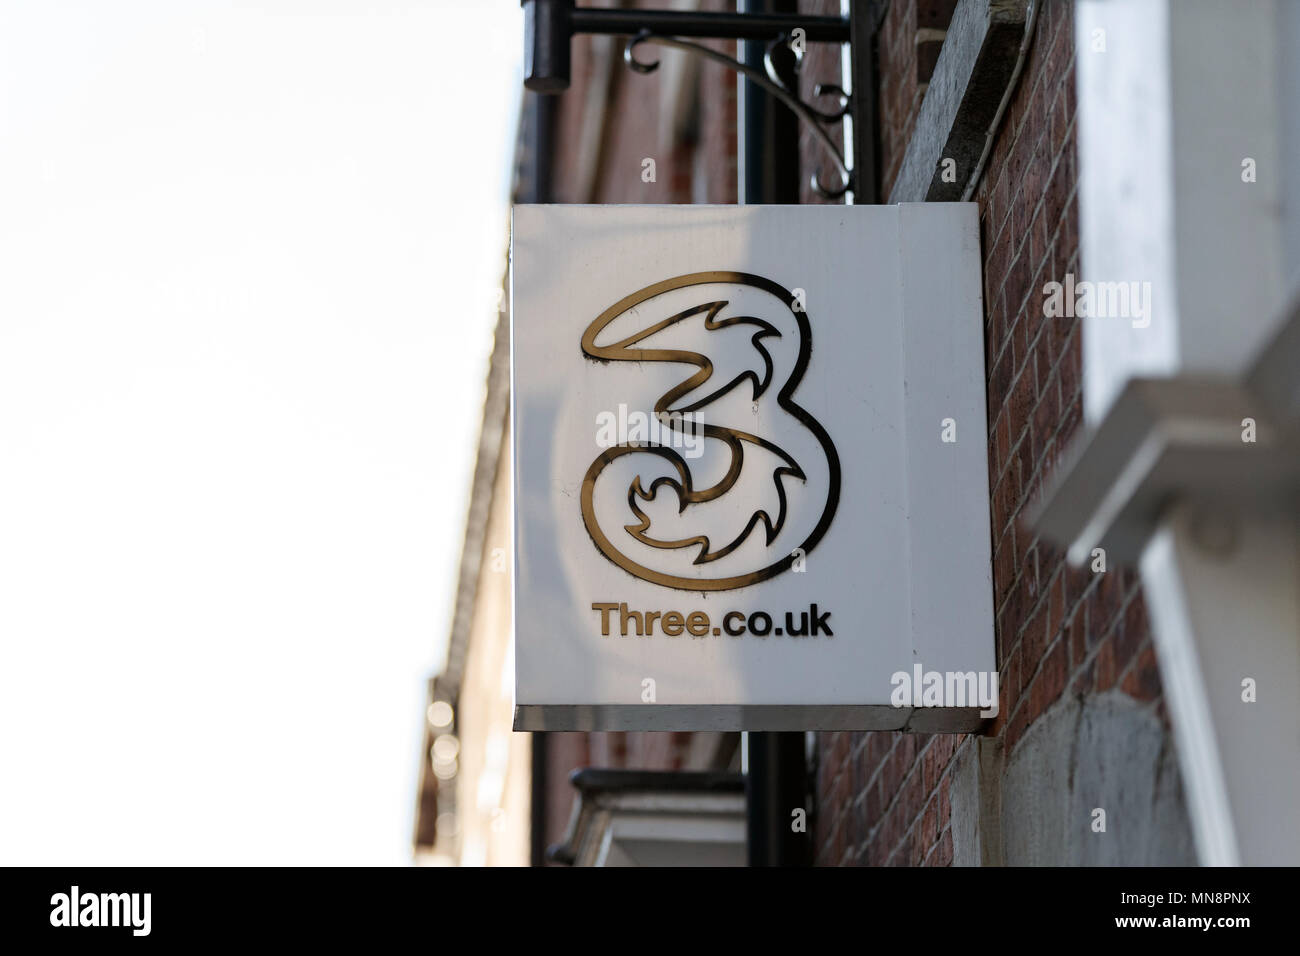 A high street branch of mobile network provider Three in the United Kingdom / Three logo, Three sign, Three high street. - Stock Image